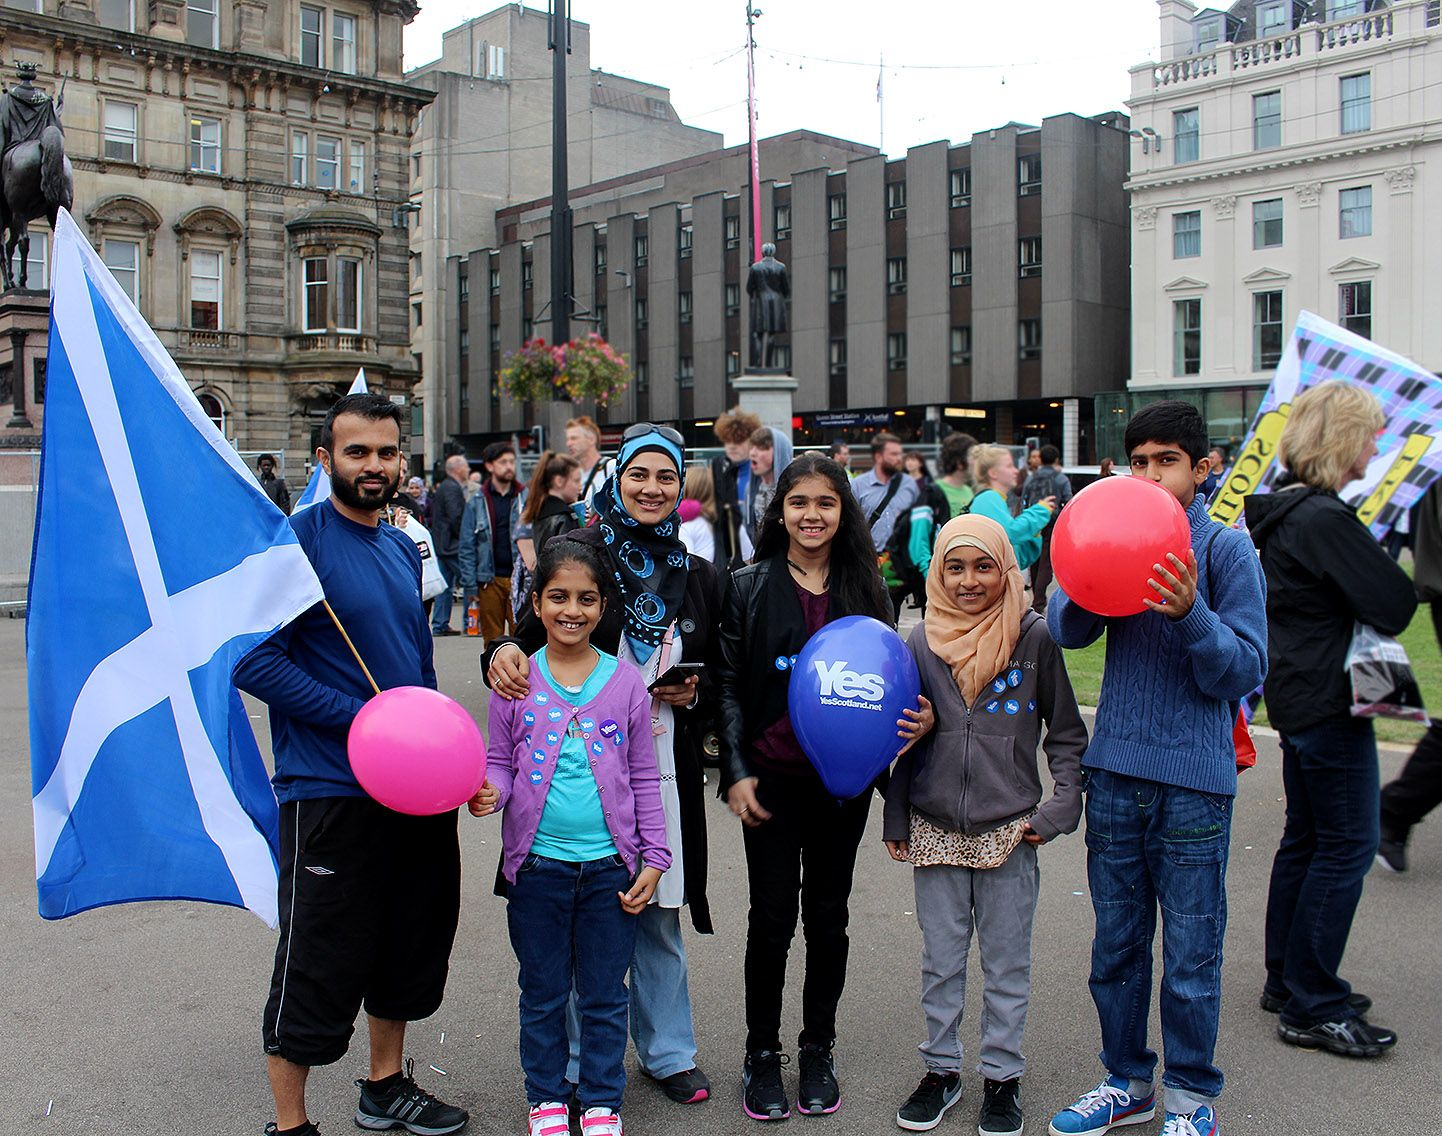 Scottish Nationalism is NOT what the media has portrayed it as!